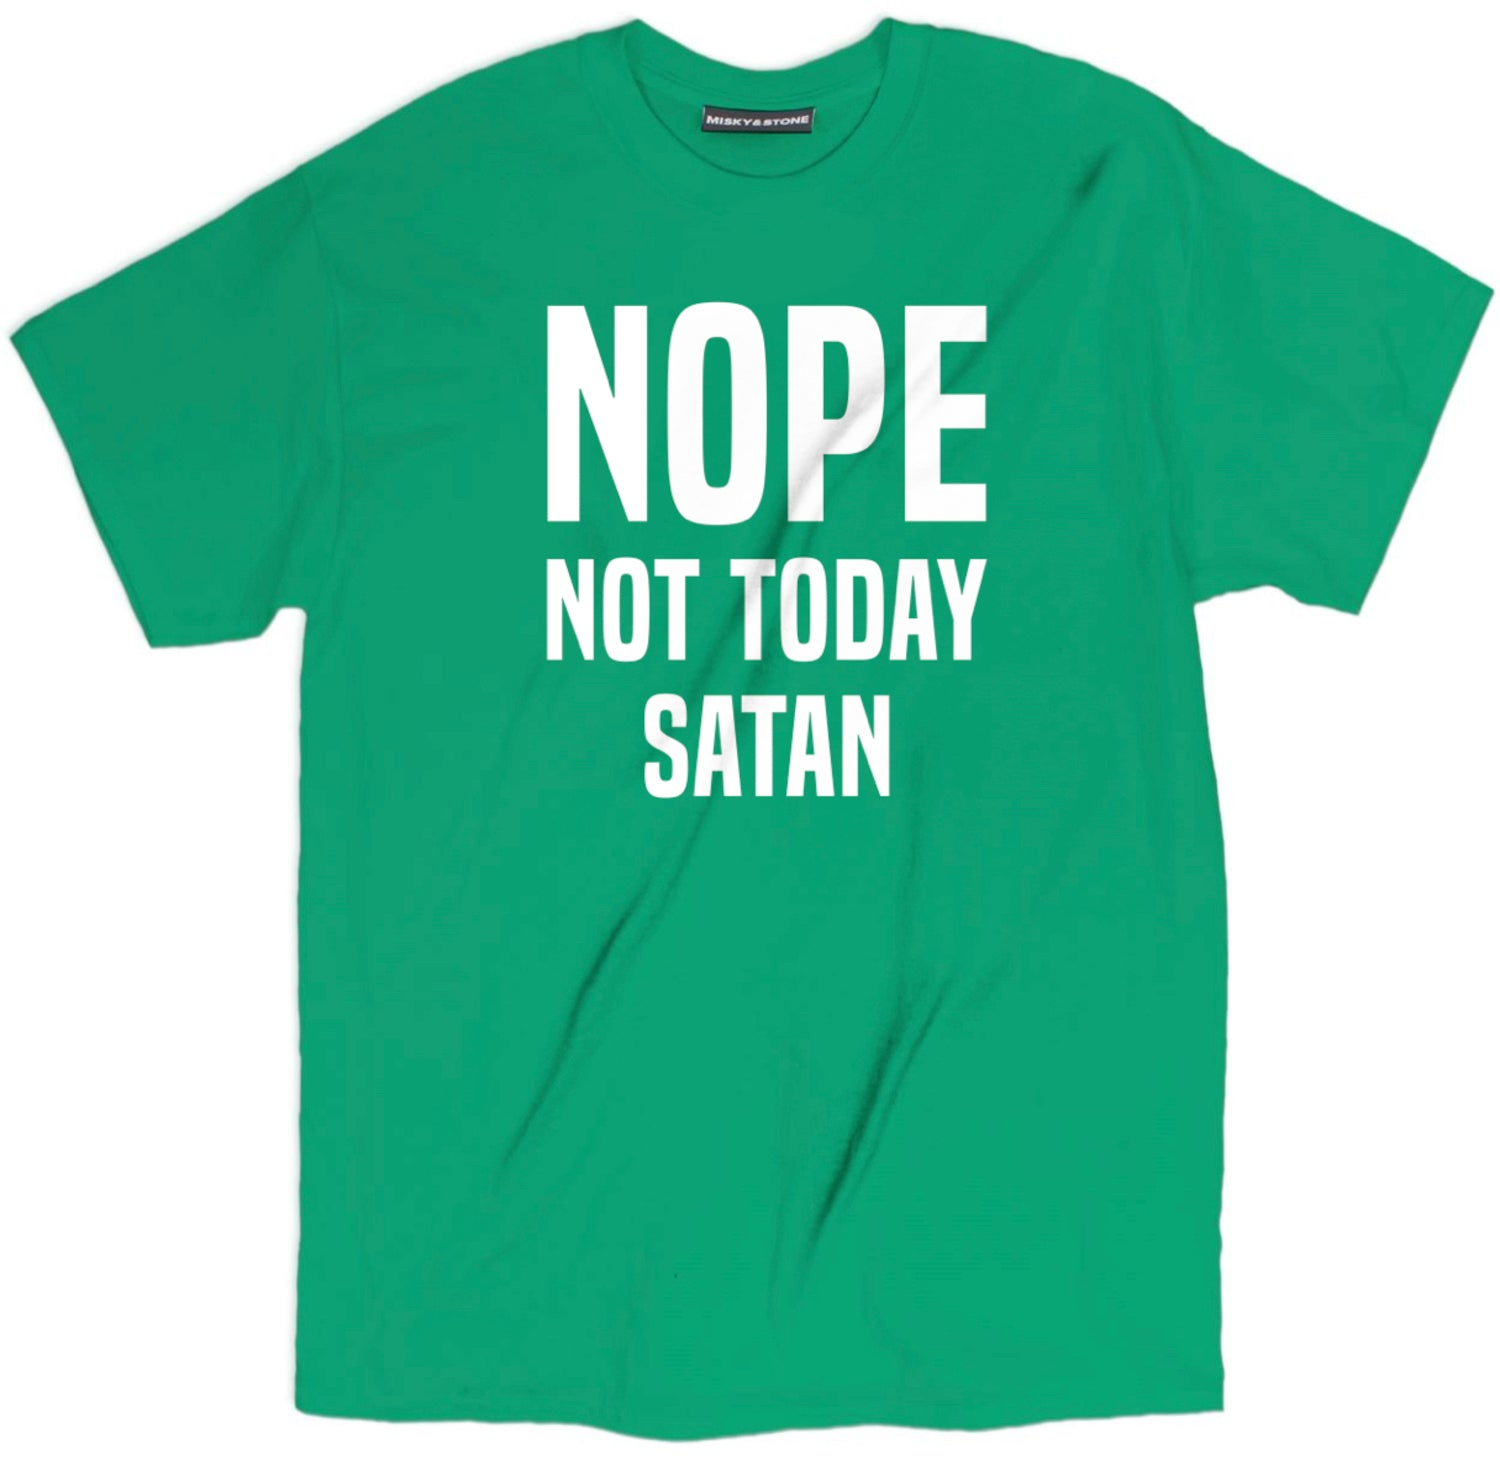 nope t shirt, not today satan t shirt, funny shirts with sayings, funny t shirt sayings, shirts with sayings, funny t shirt quotes, t shirt quotes, tee shirts with sayings, tee shirt quotes, quote tees, hilarious t shirt sayings, funny tee shirt sayings, t shirts with sayings on them,